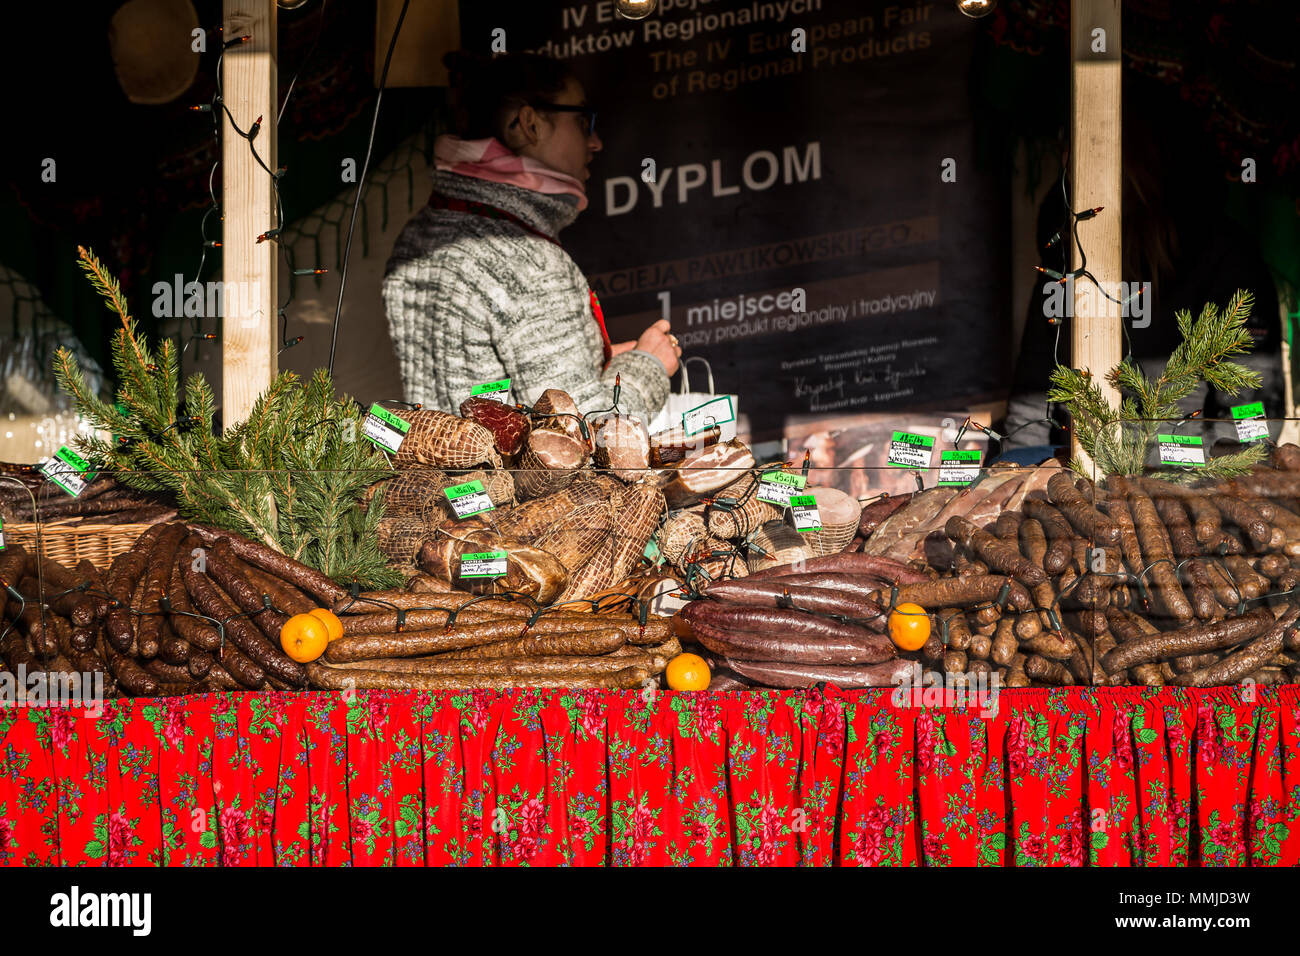 Traditional meat products on Christmas market stand in Krakow, Poland - Stock Image